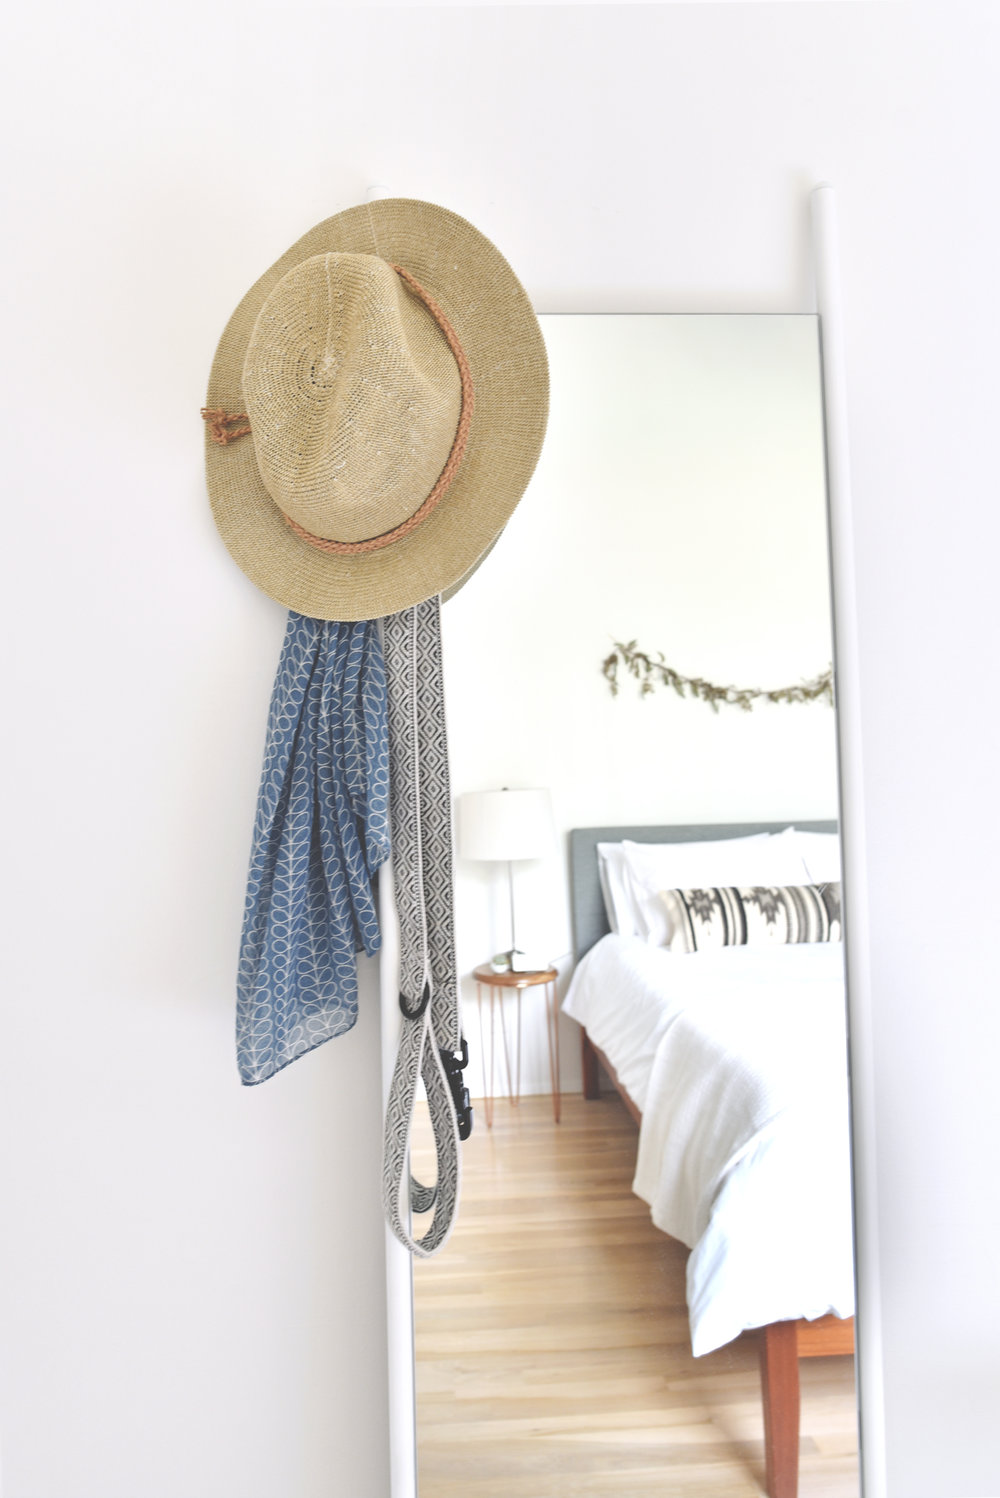 Leash:  Allku Pets   |  Wall Mirror: Urban Outfitters